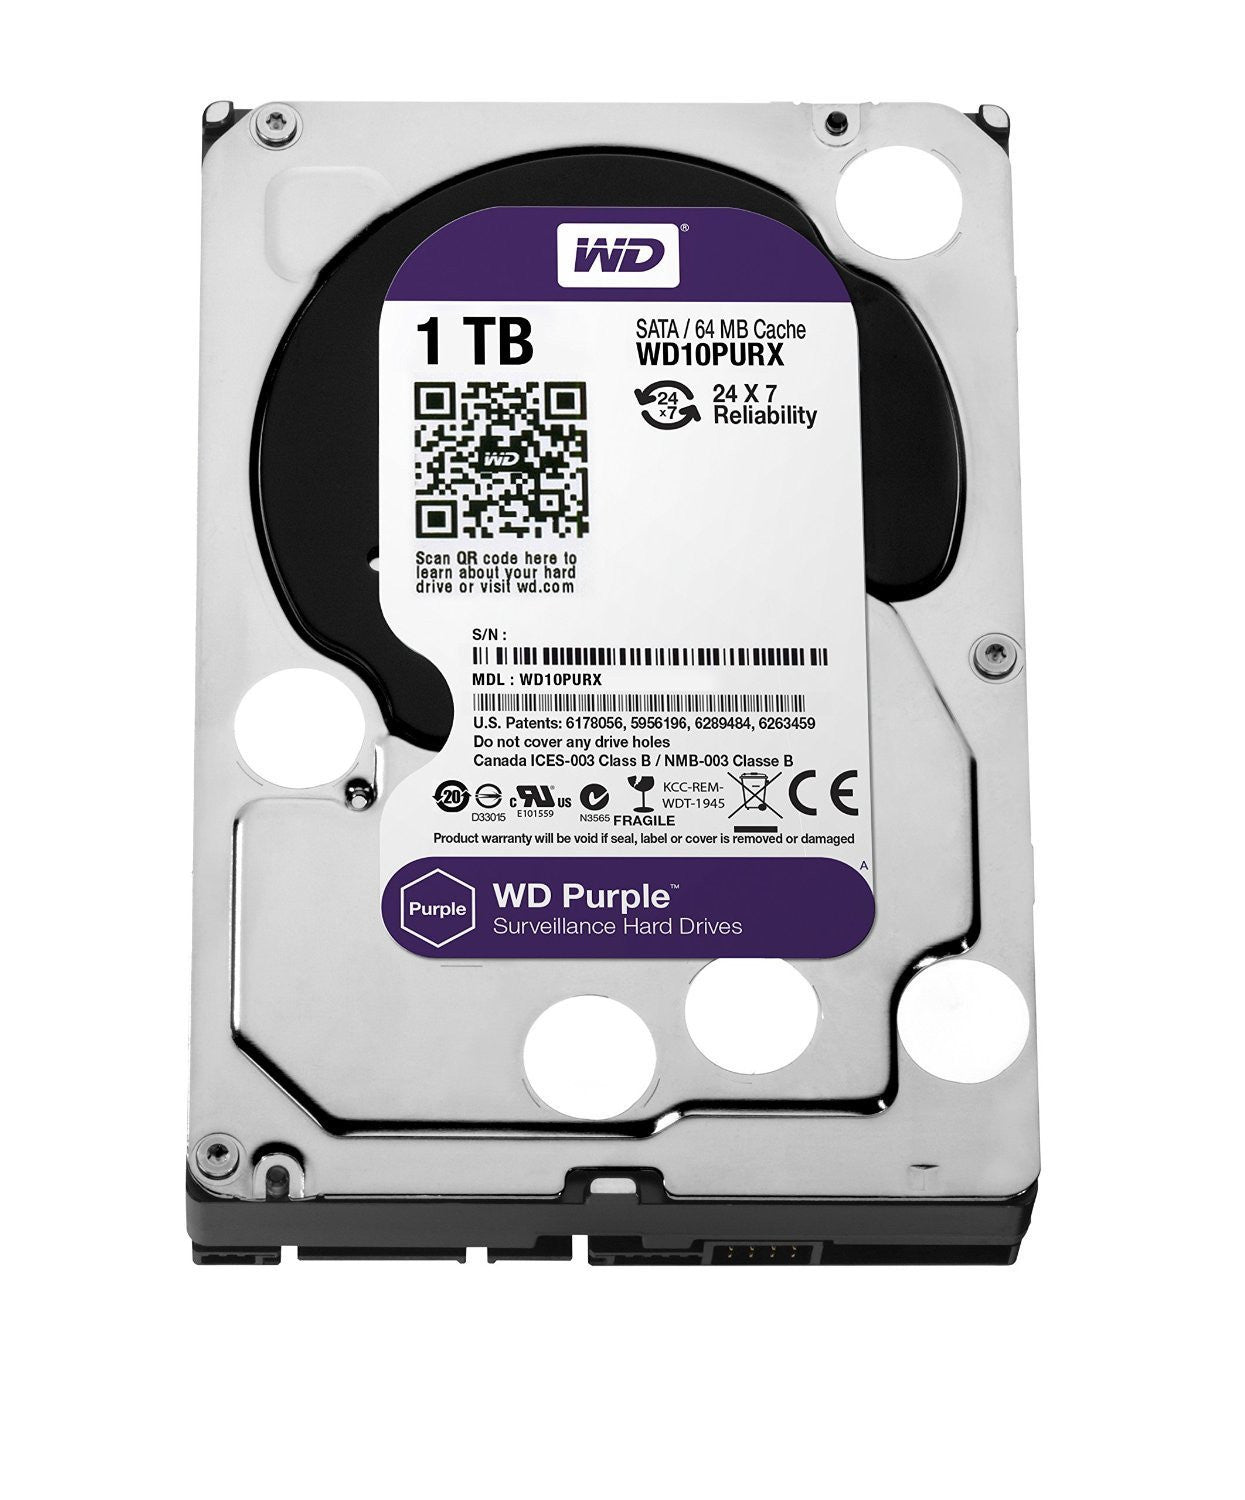 WD Purple 2TB Surveillance Hard Disk Drive - 5400 RPM Class SATA 6 Gb/s 64MB Cache 3.5 Inch - WD20PURX - Security-Smart-Shop